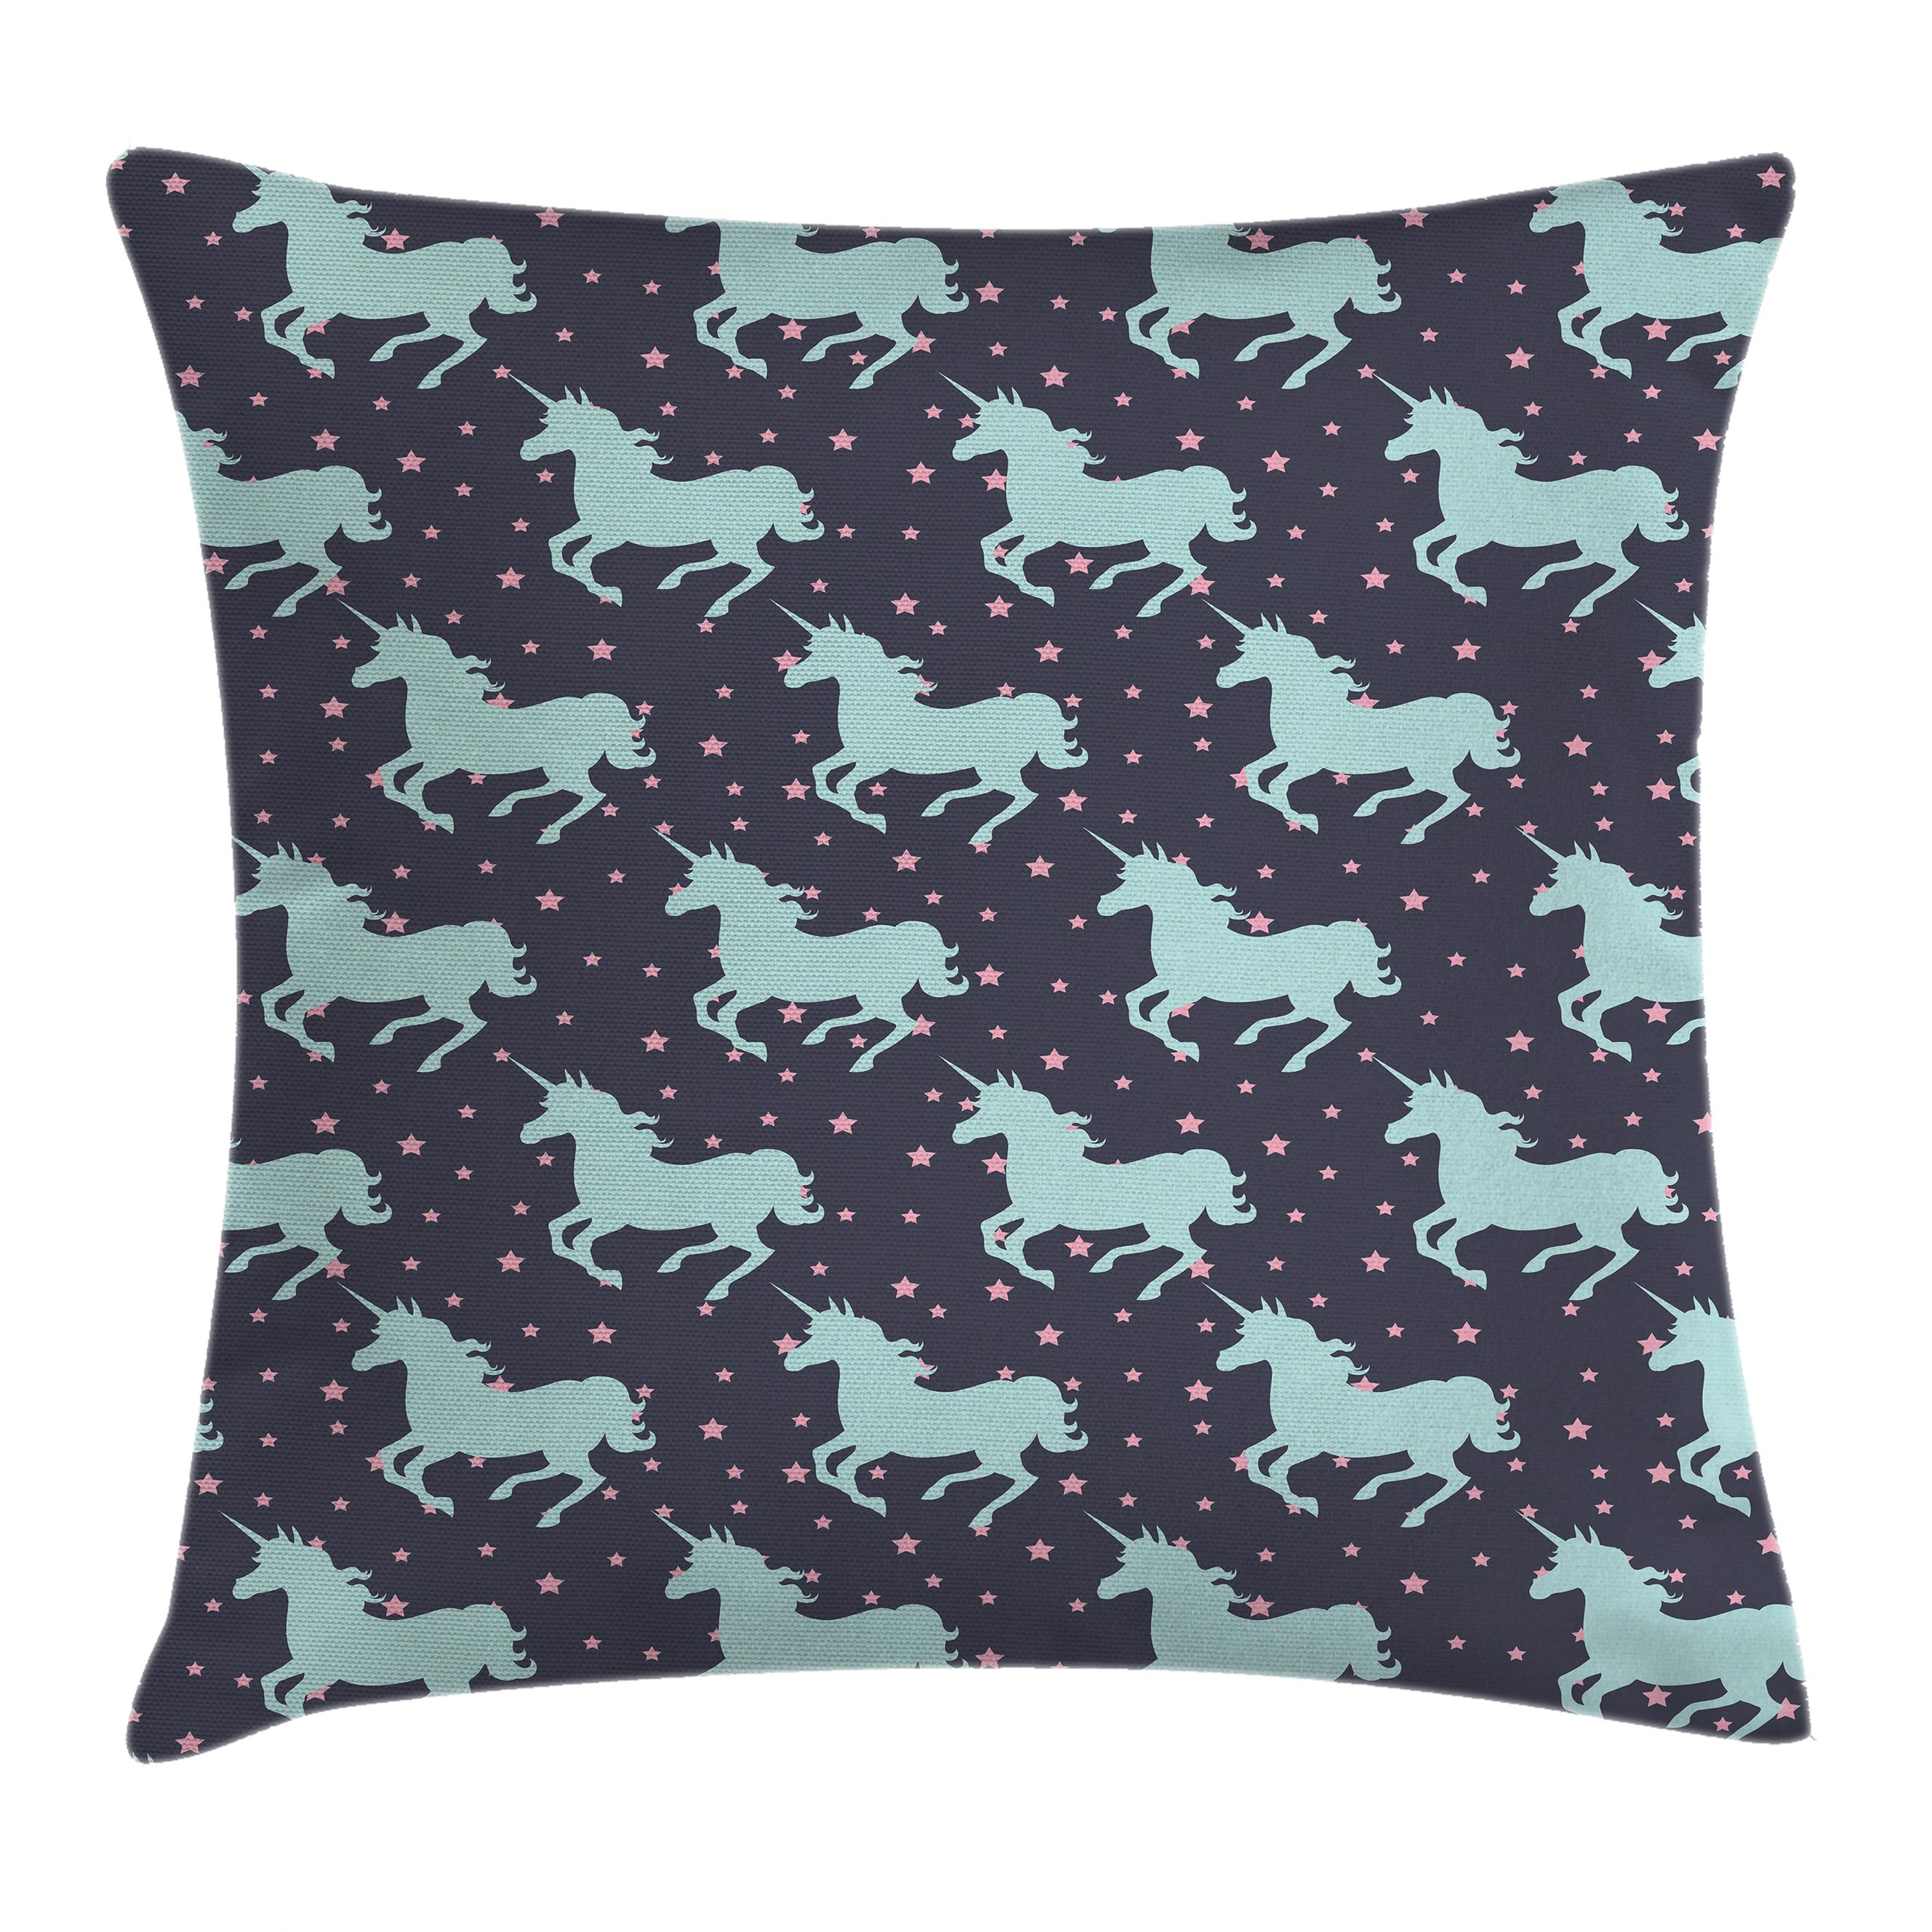 Children Room Throw Pillow Cushion Cover, Cute Unicorn with Twinkle Little Spot Stars and Dark Background Art, Decorative Square Accent Pillow Case, 16 X 16 Inches, Dark Blue and Pink, by Ambesonne